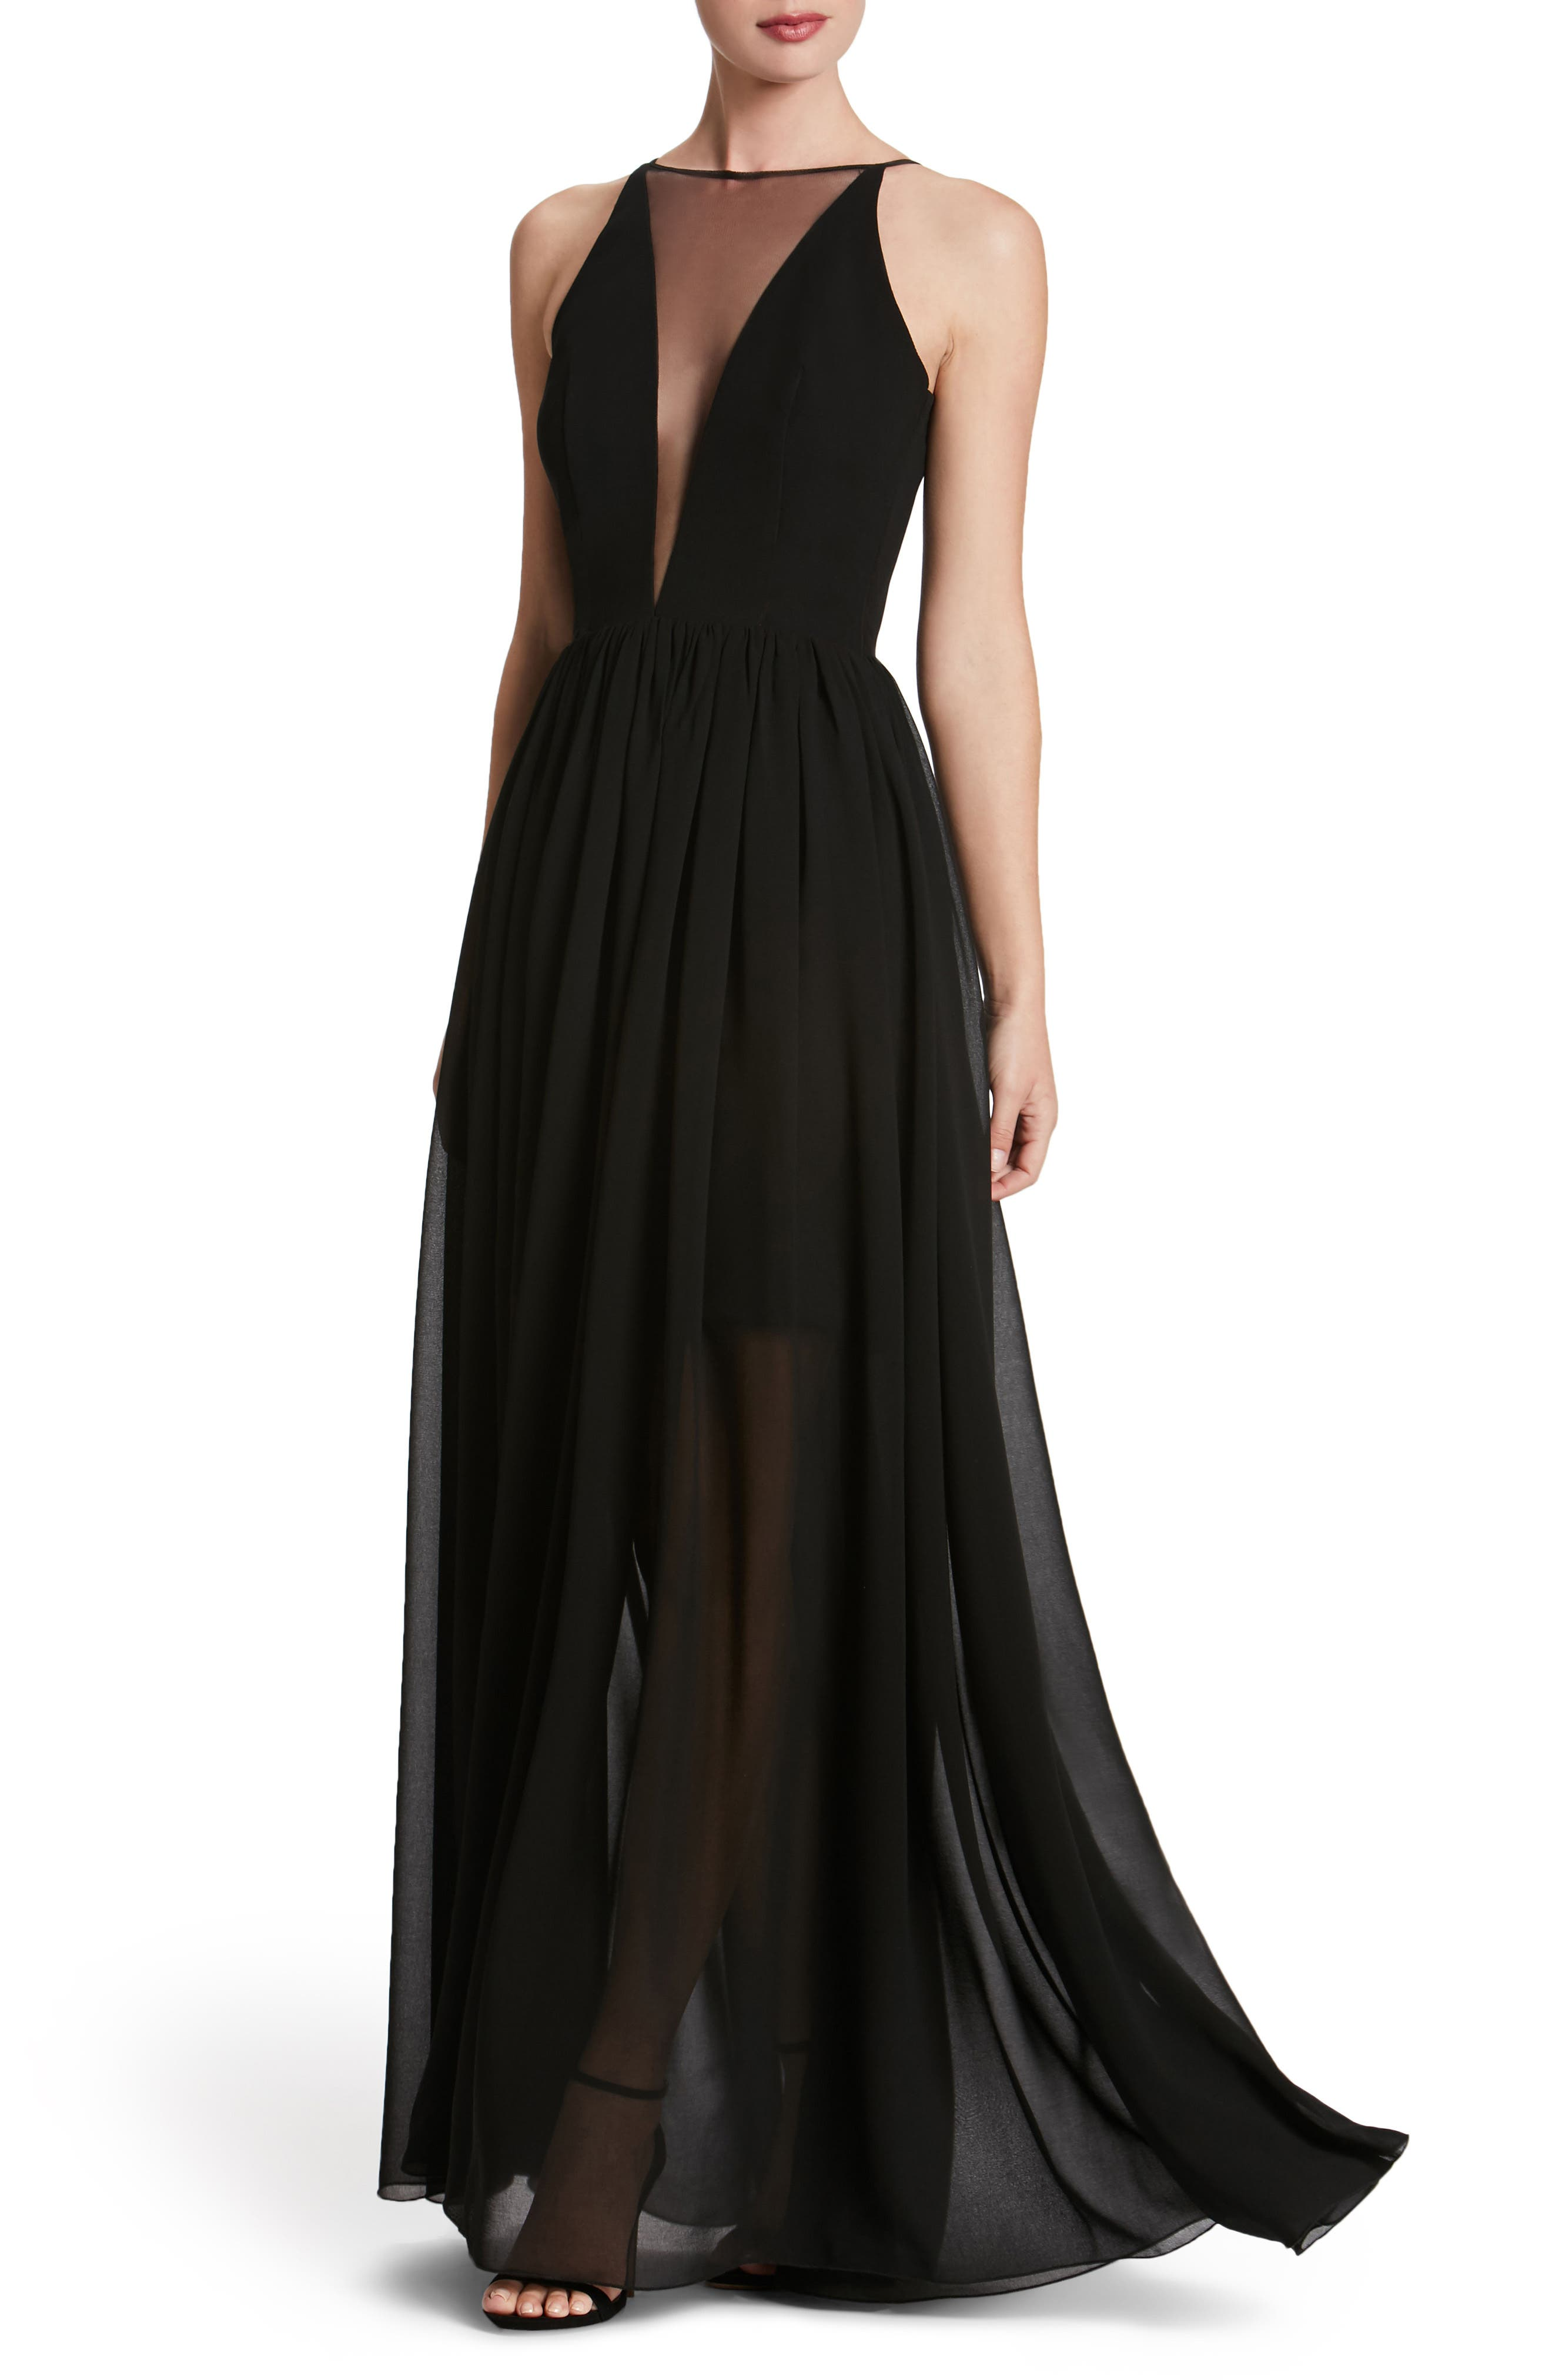 Patricia Illusion Gown,                             Main thumbnail 1, color,                             Black